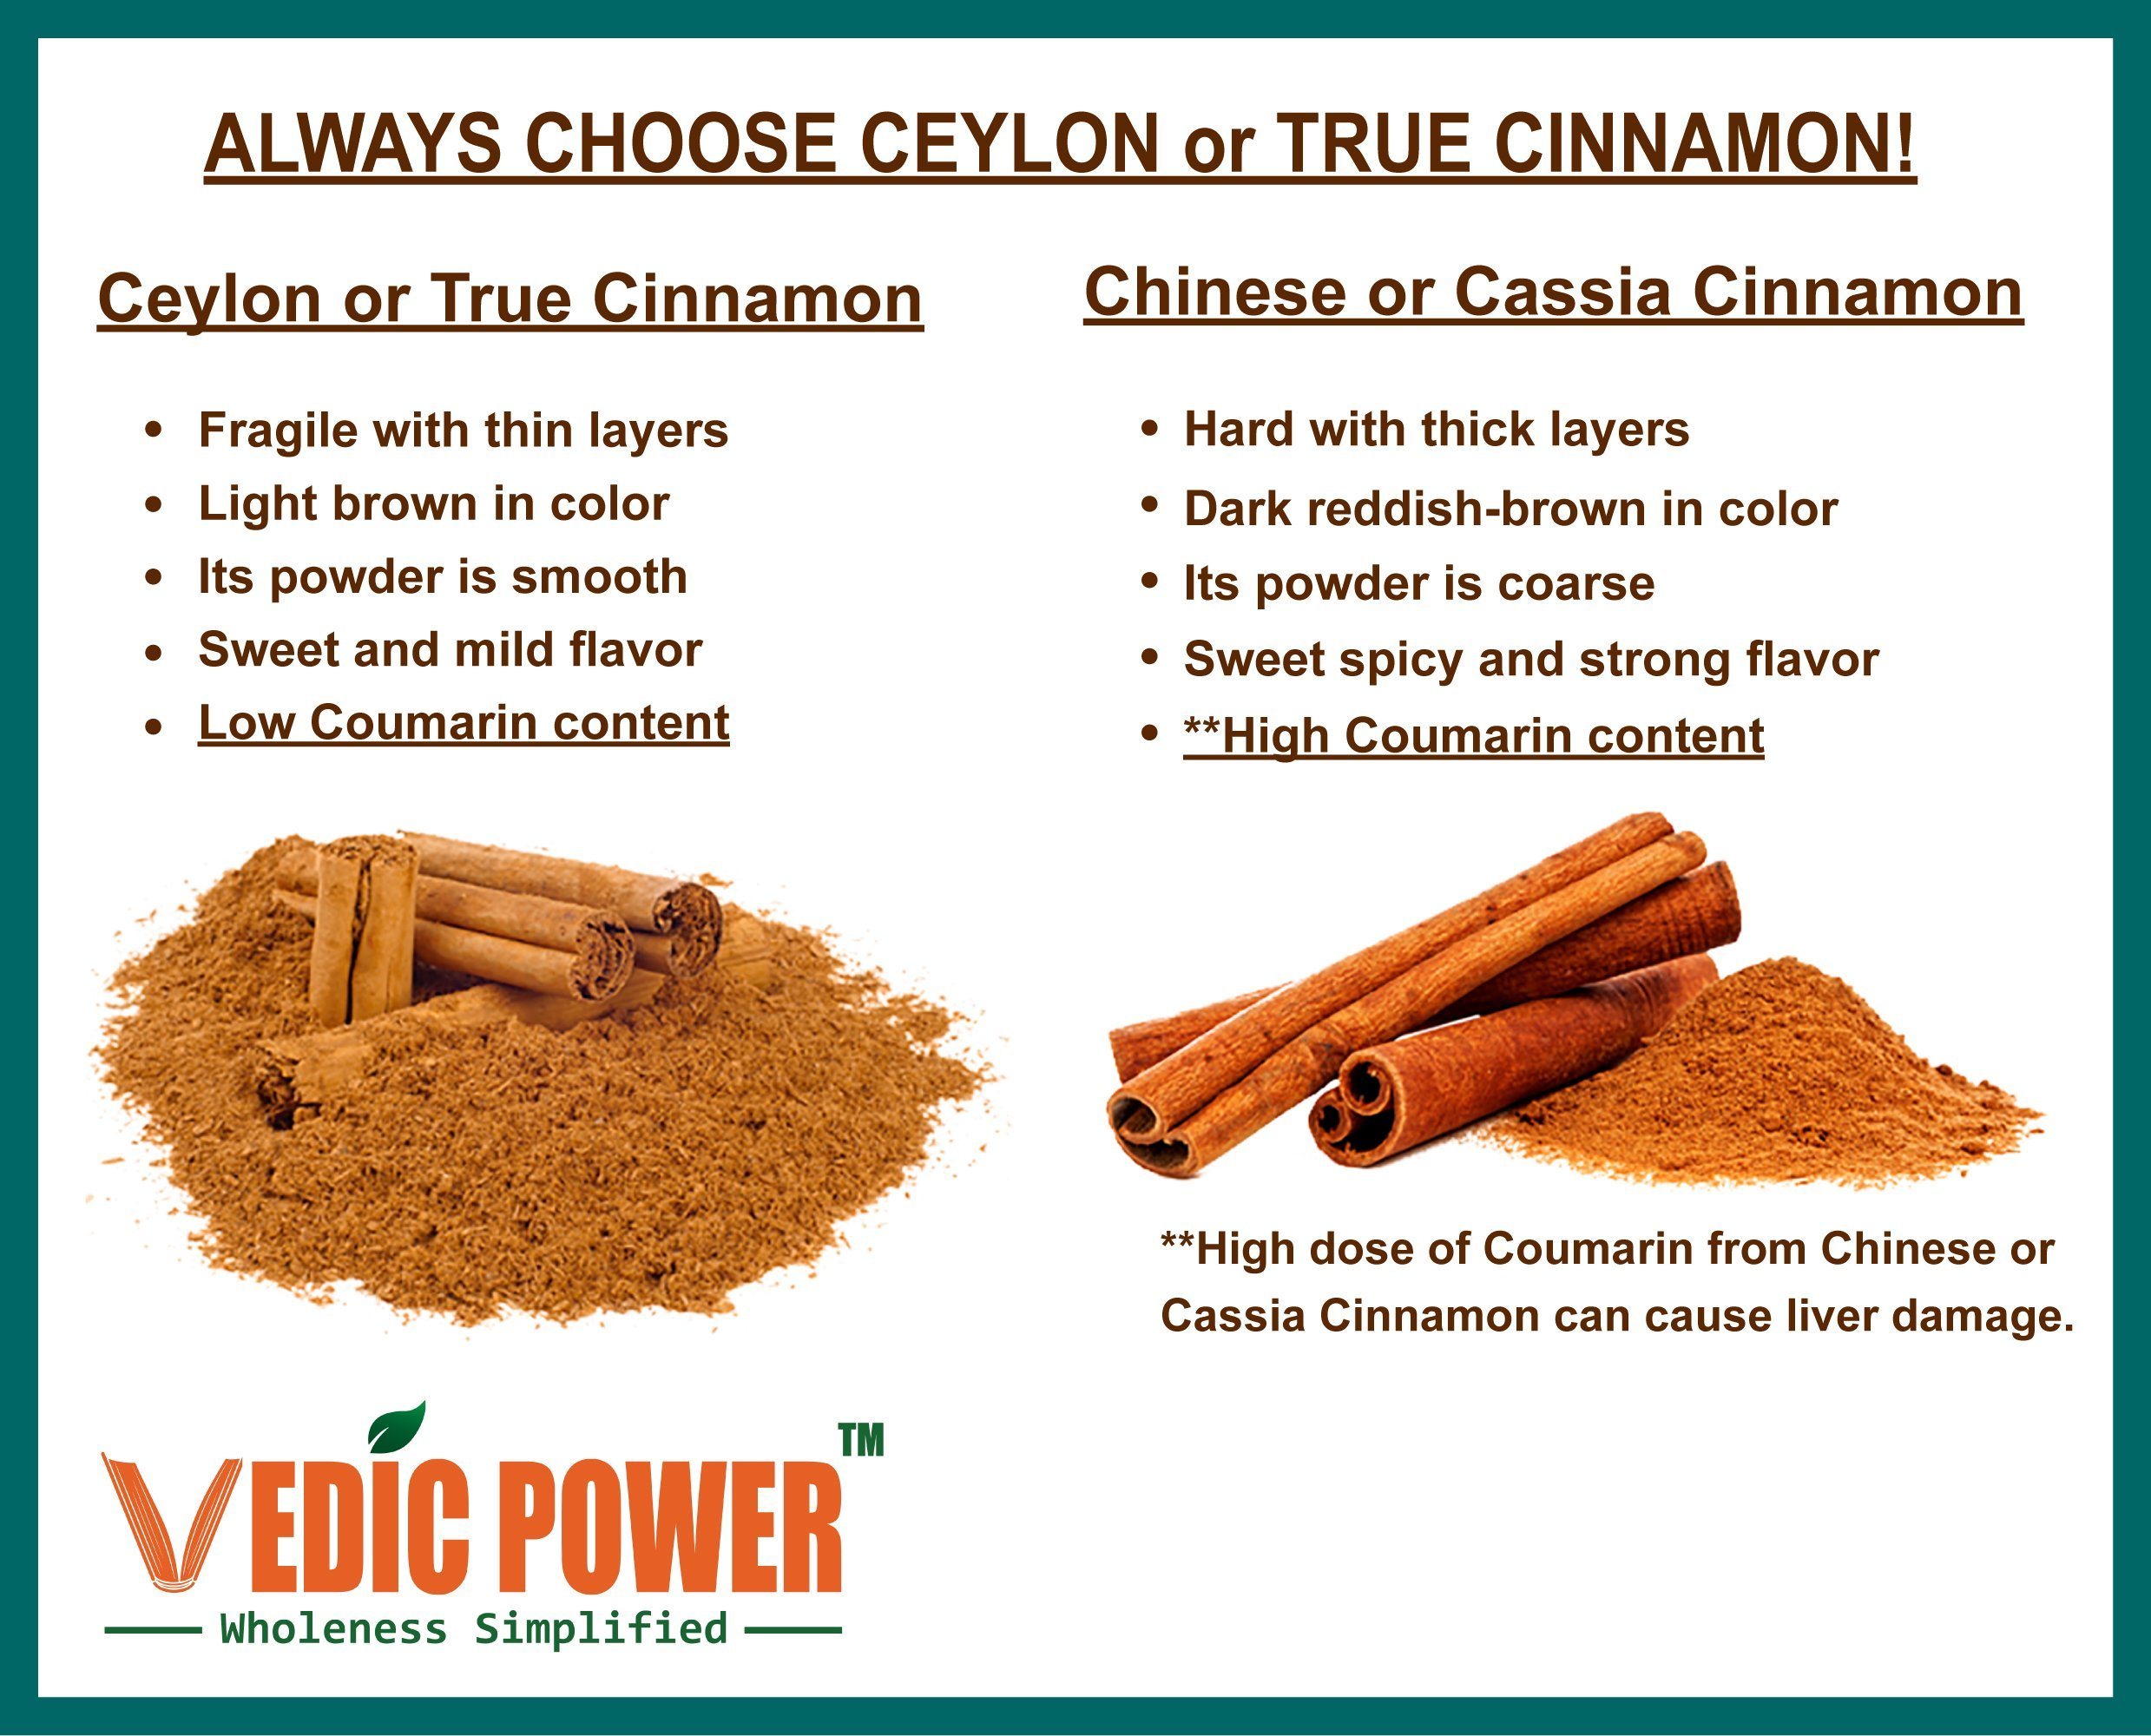 Organic Ceylon Cinnamon (UDAF Certified) 60 Capsules, 1200 mg per Serving Helps Manage Blood Sugar/Fat Levels, Boosts Heart Health, Anti-Oxidant & Immune Support by Vedic Power (TM) Wholeness Simplified (Image #4)